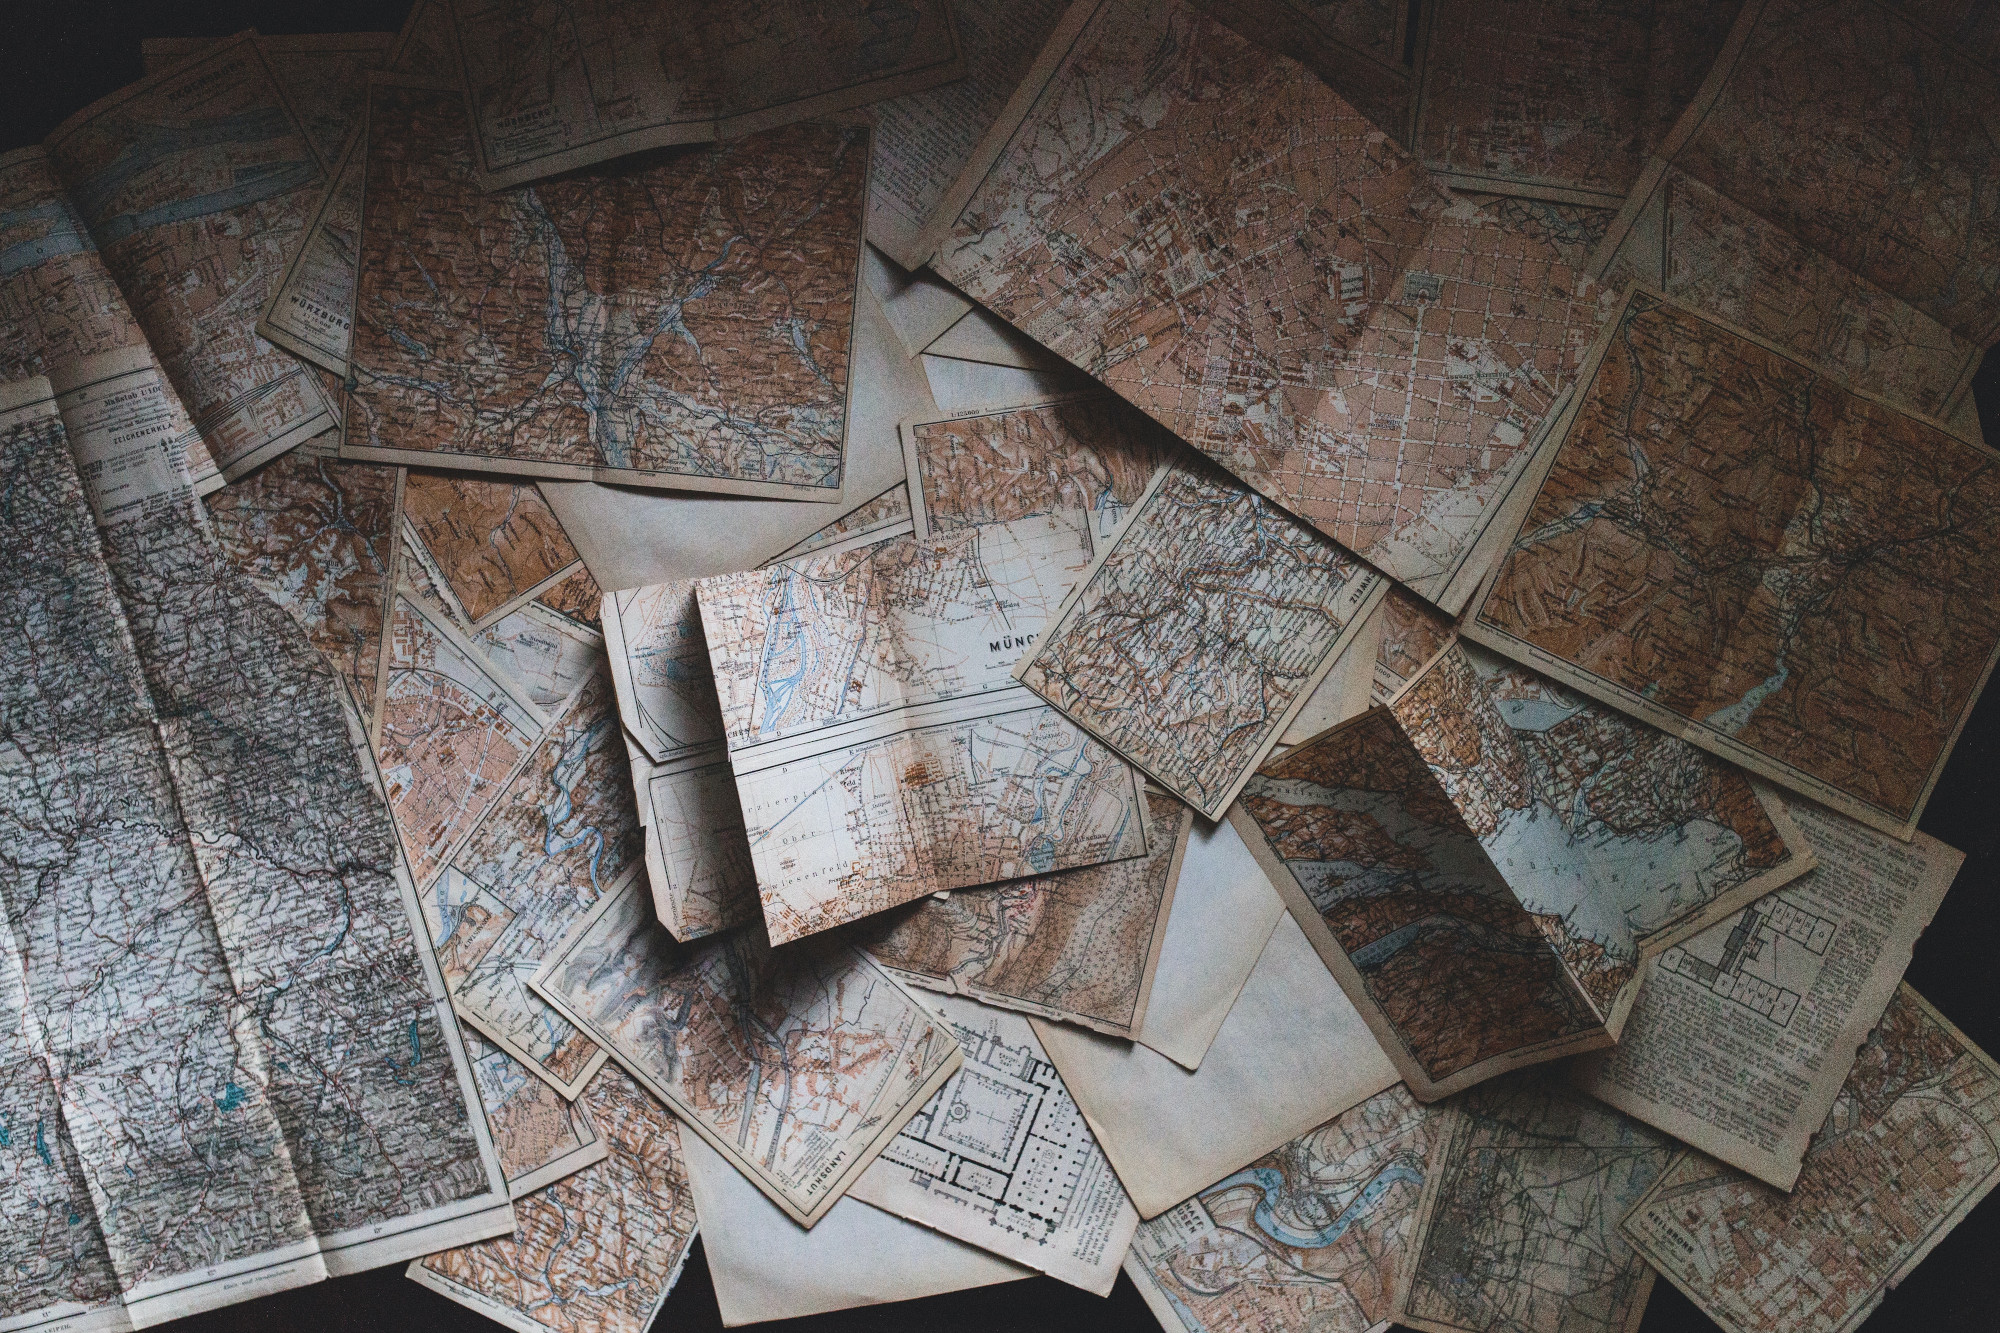 Image: scattered maps and old atlases